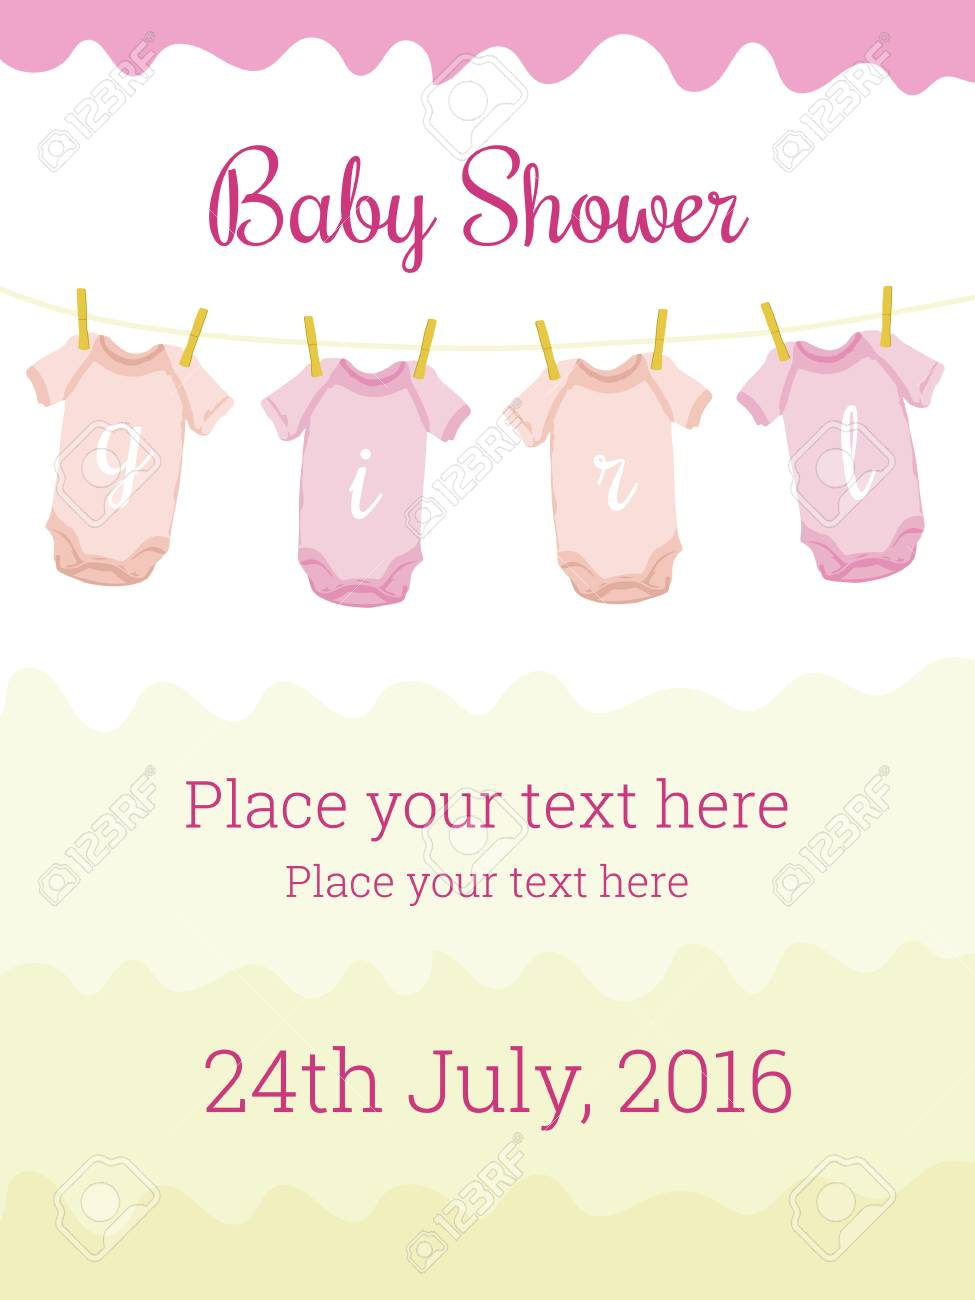 Baby Shower Invitation Card Template For Baby Girl Cute Design